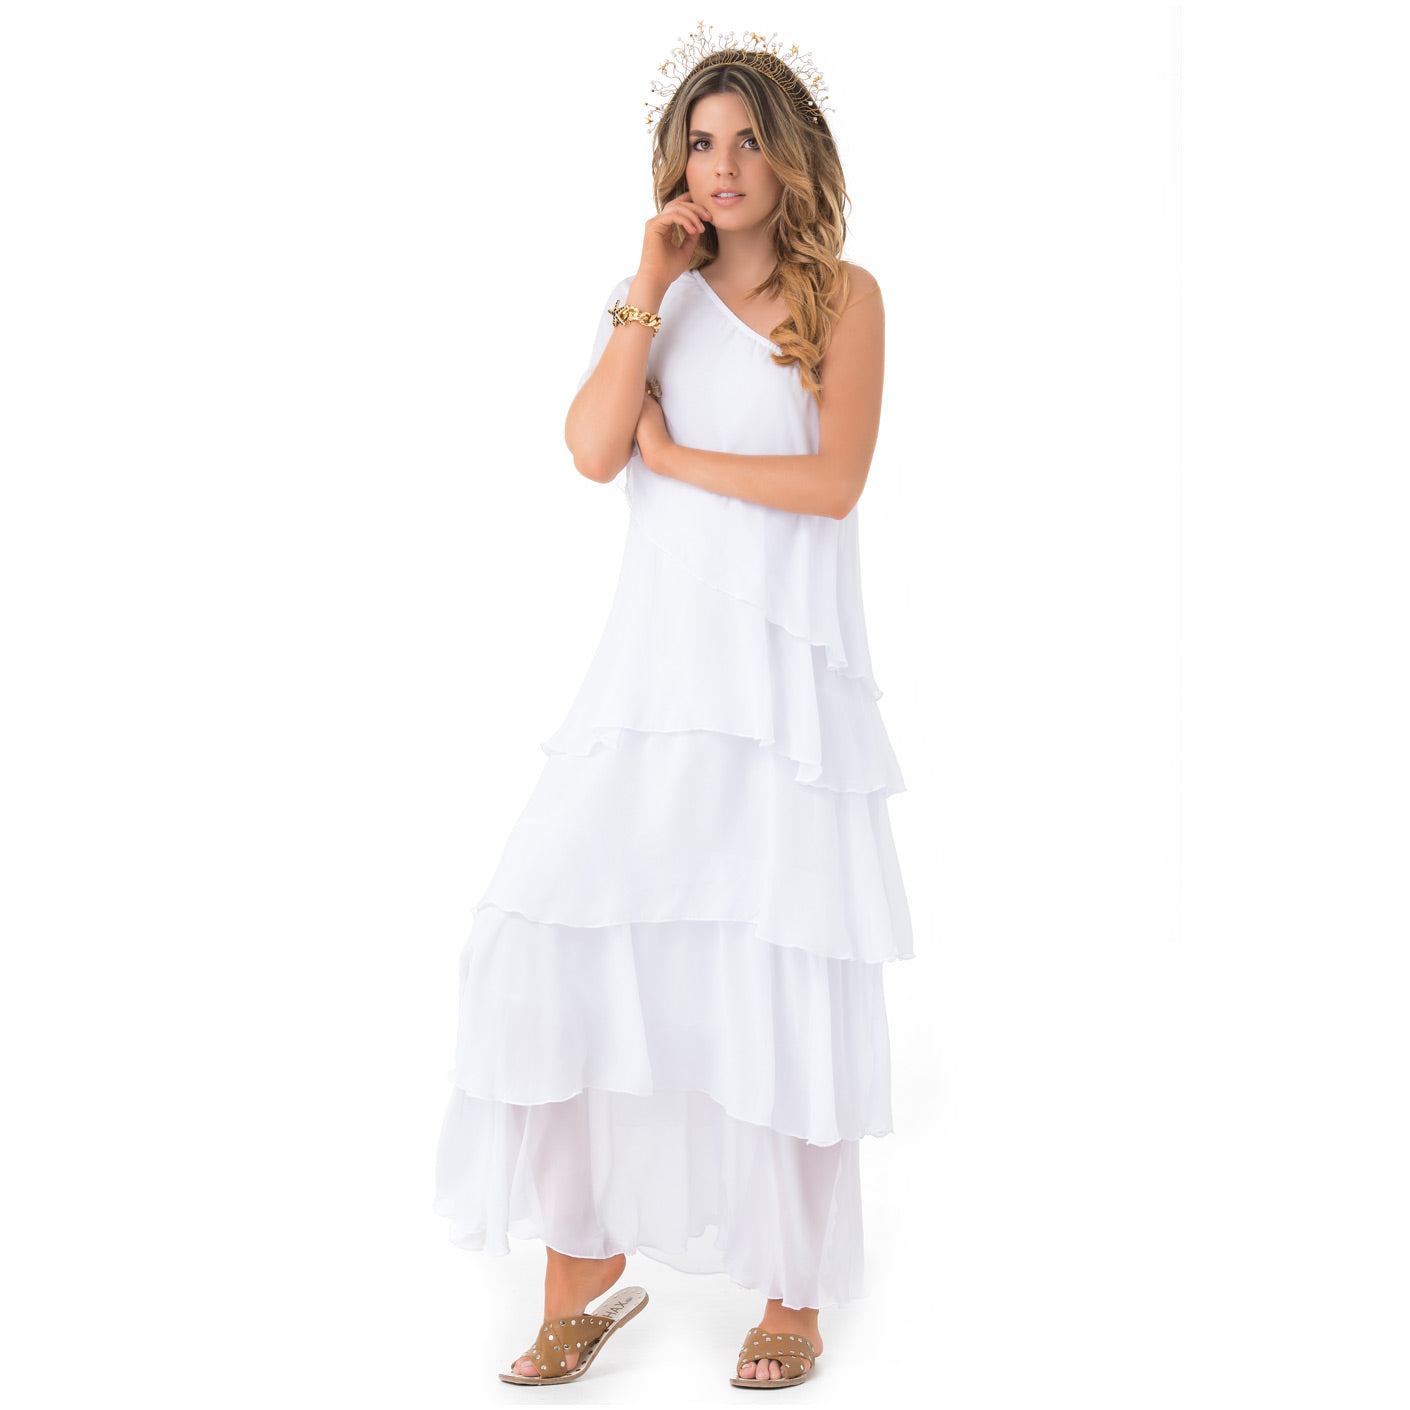 PHAX COLOMBIAN SWIMWEAR ASIMMETRICAL LAYERED LONG MAXI SUMMER DRESS